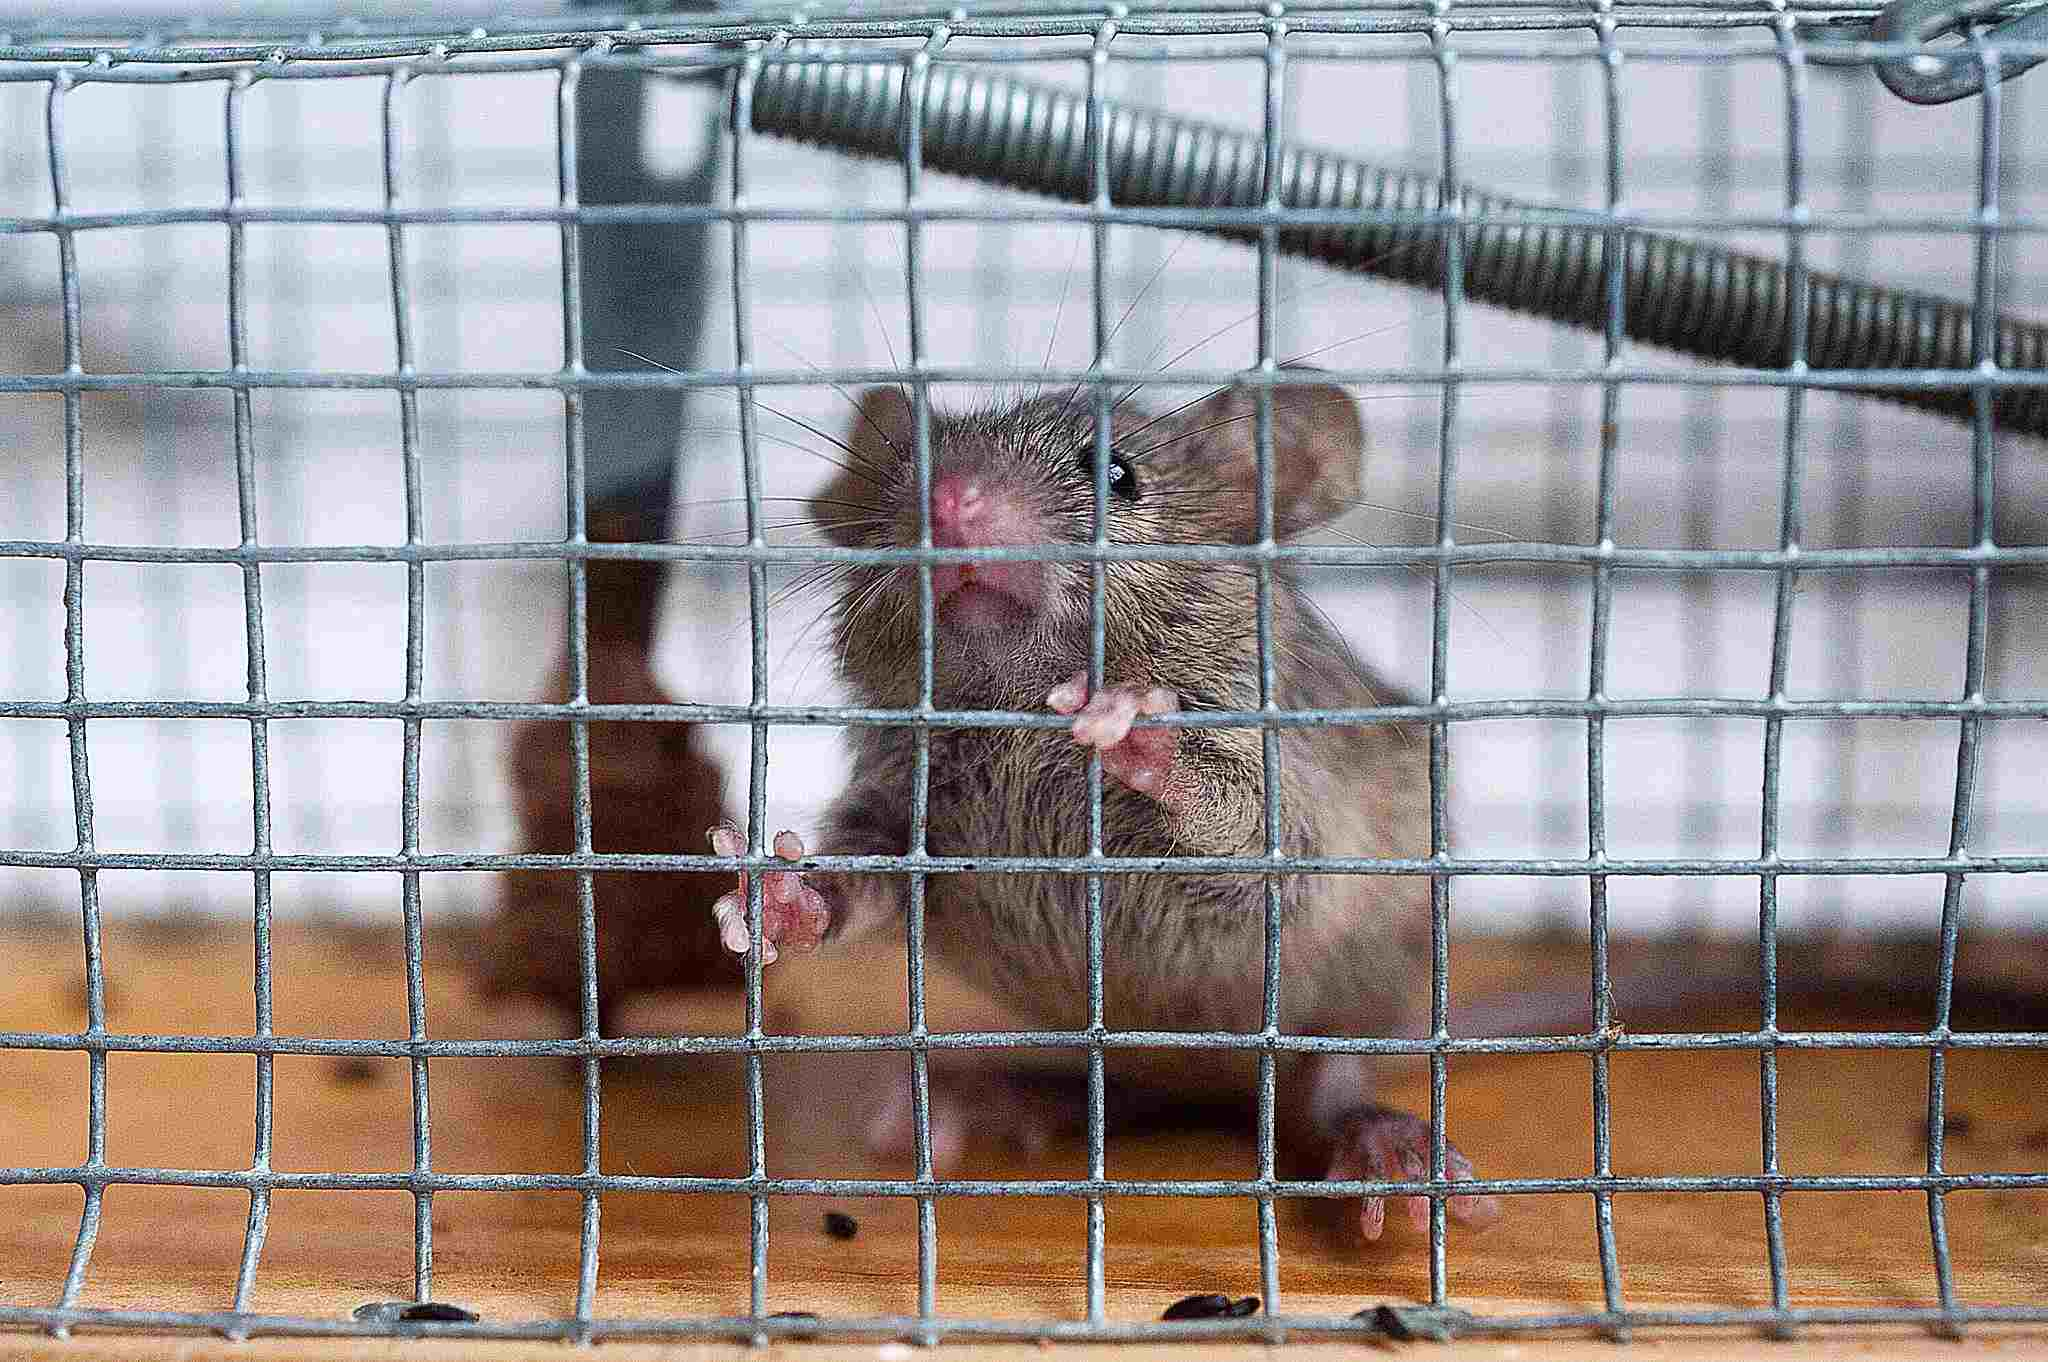 A mouse in a cage symbolizes Max Weber's concept of the iron cage of bureaucracy